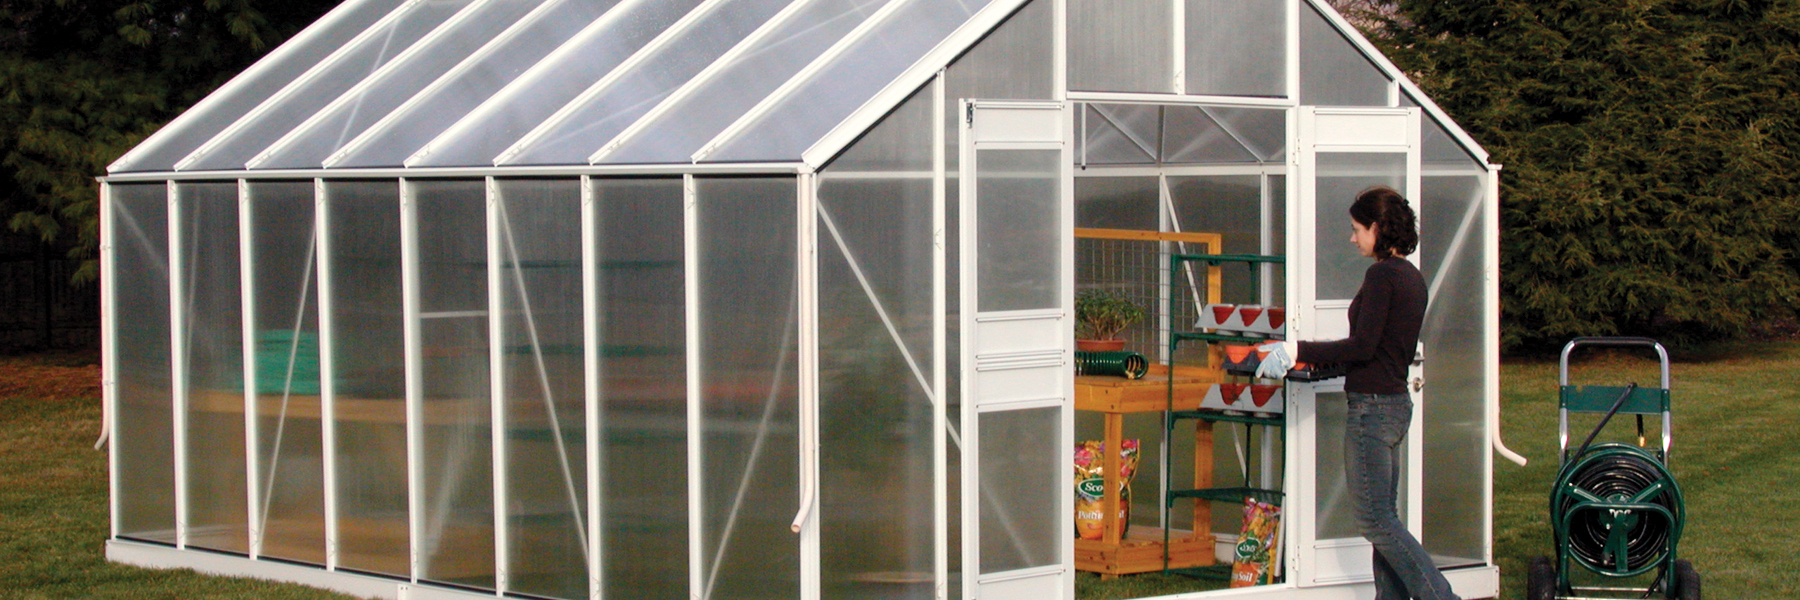 urban greenhouses